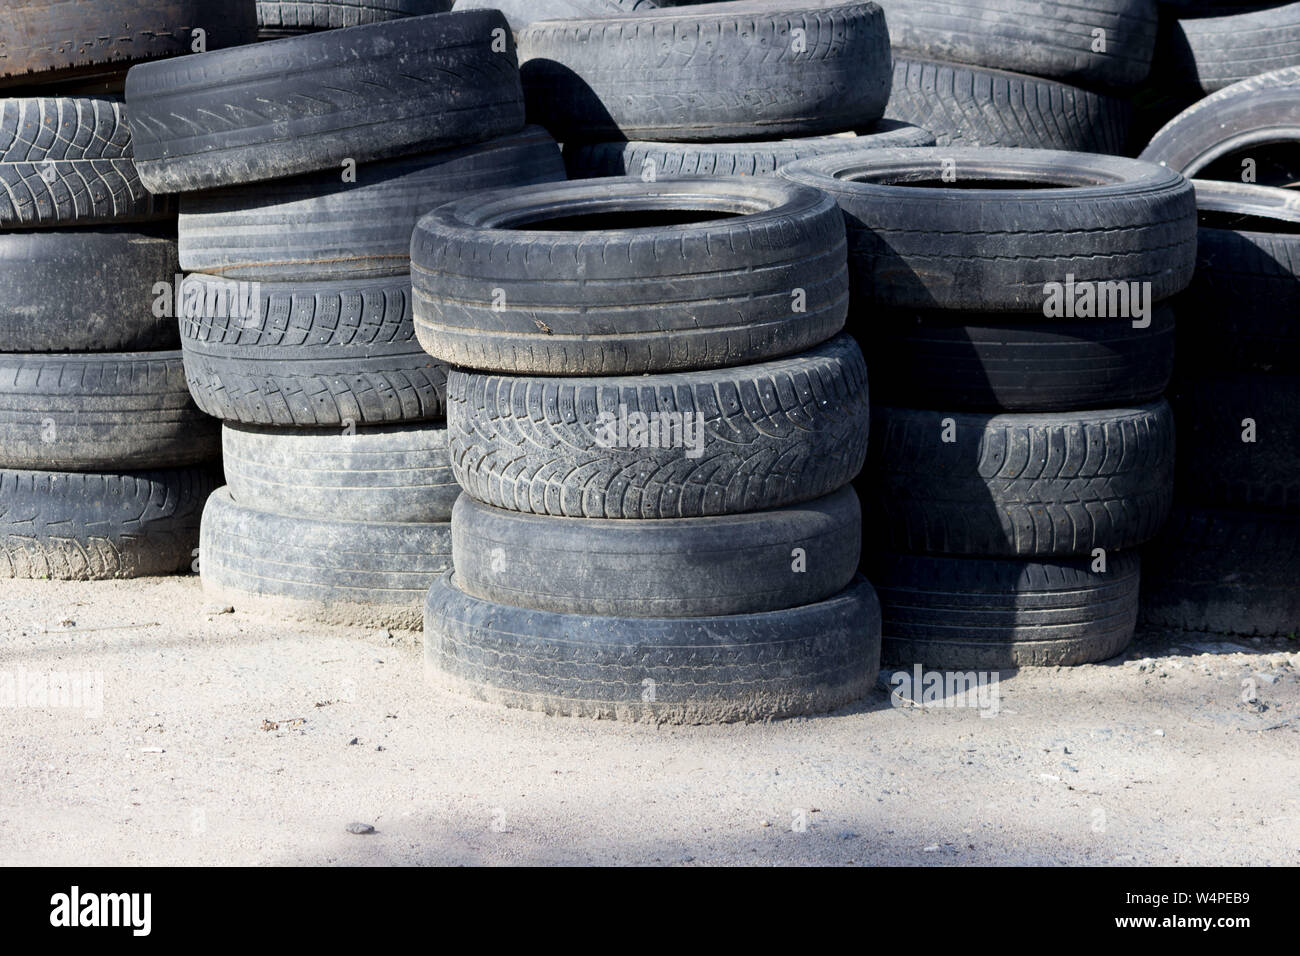 old car tires stacked near the forest. concept of ecological disaster and illegal dumps. Stock Photo